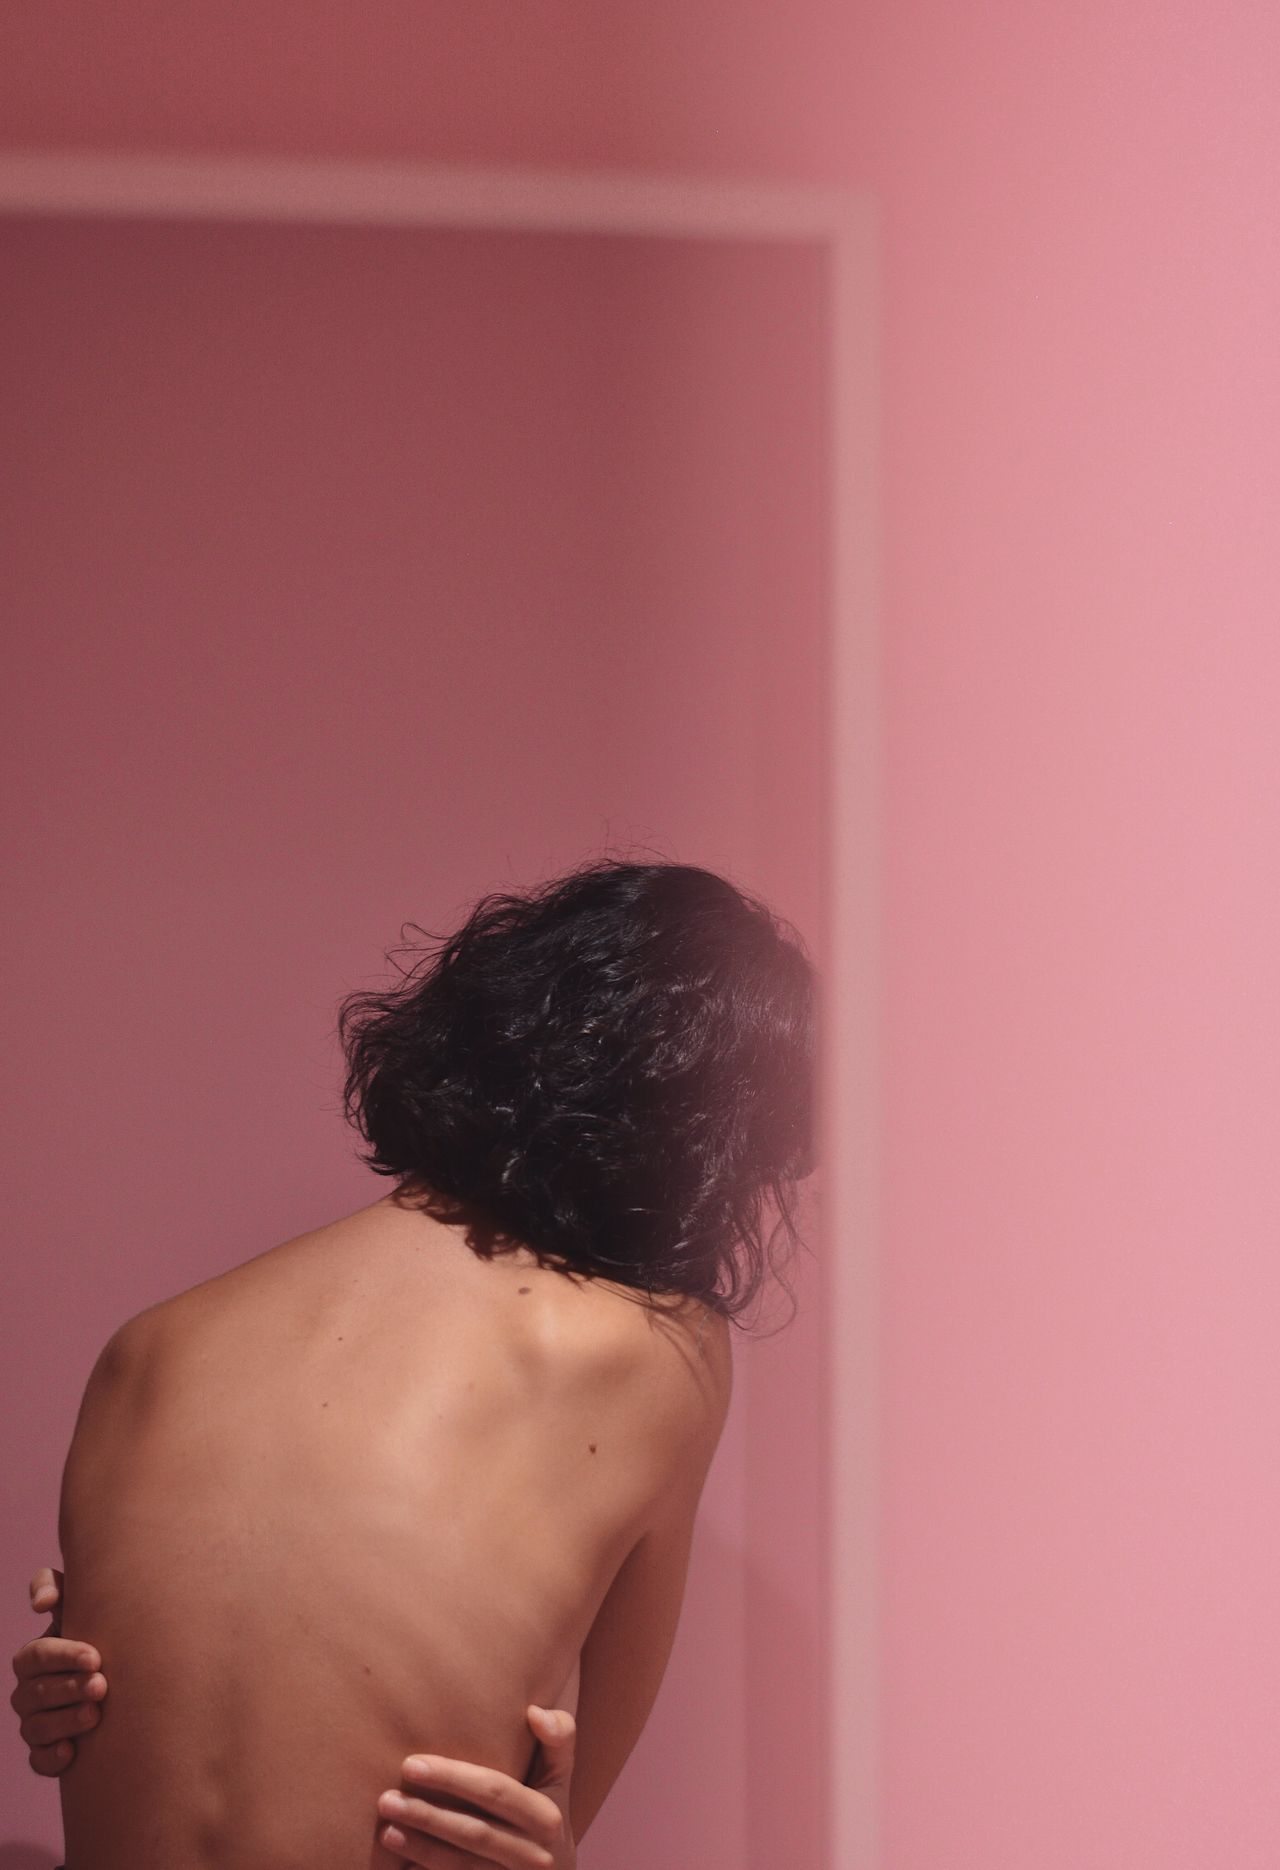 Rear view of shirtless sensuous woman standing against pink wall